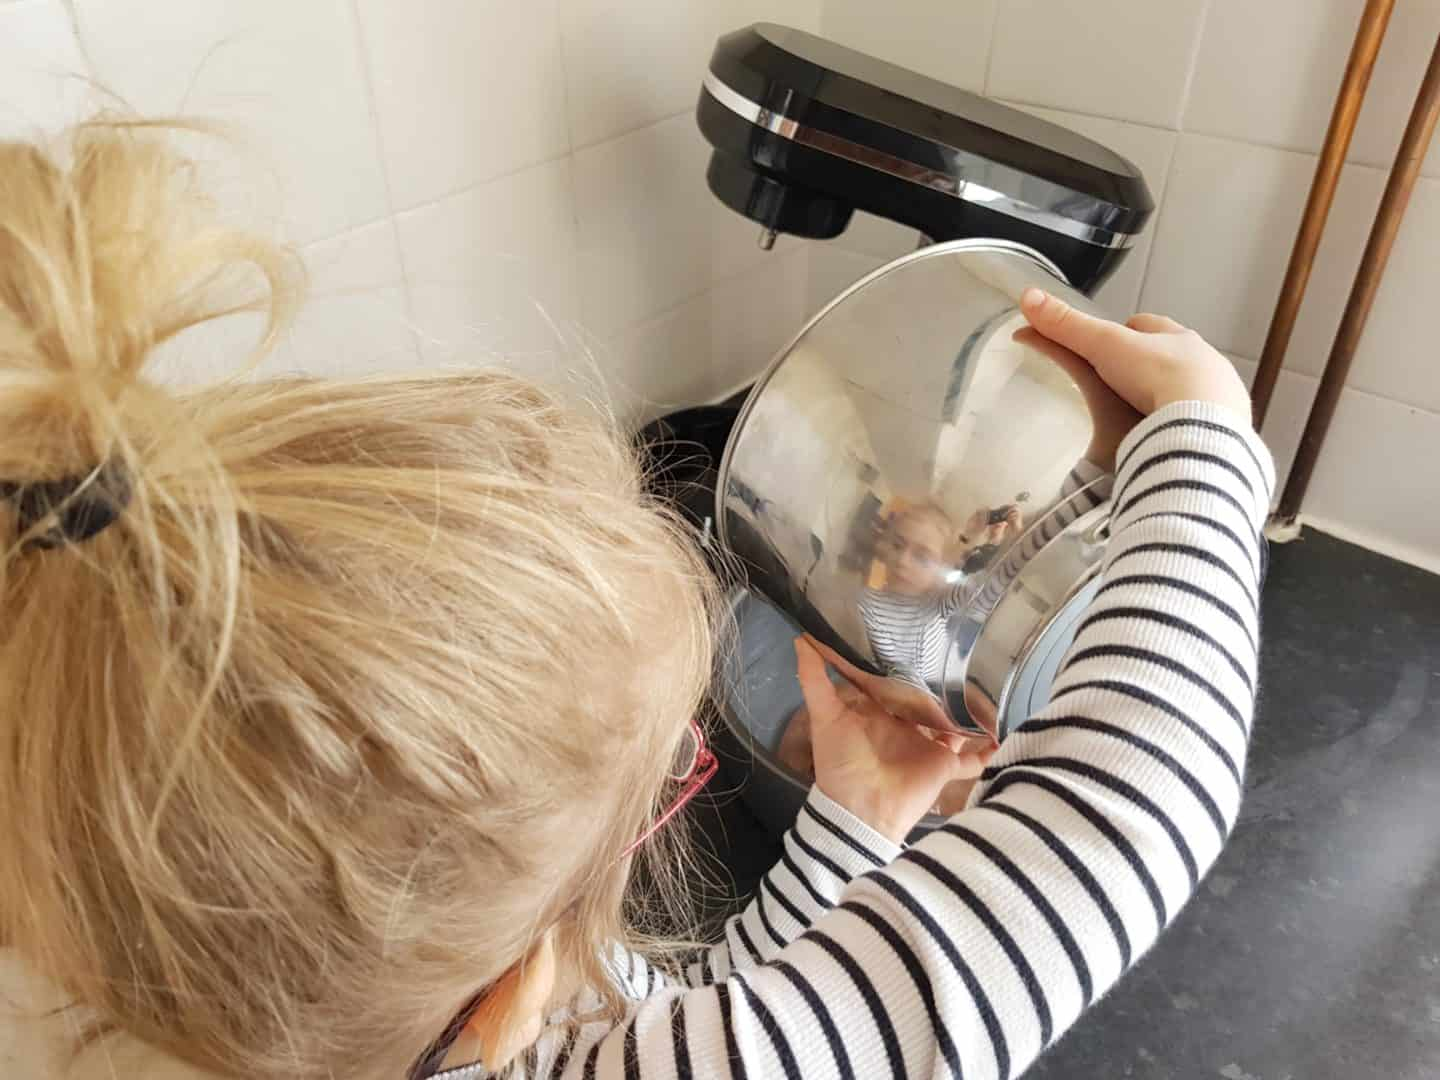 Girl pouring cake mixture from Von Shef stand mixer stainless steel mixing bowl